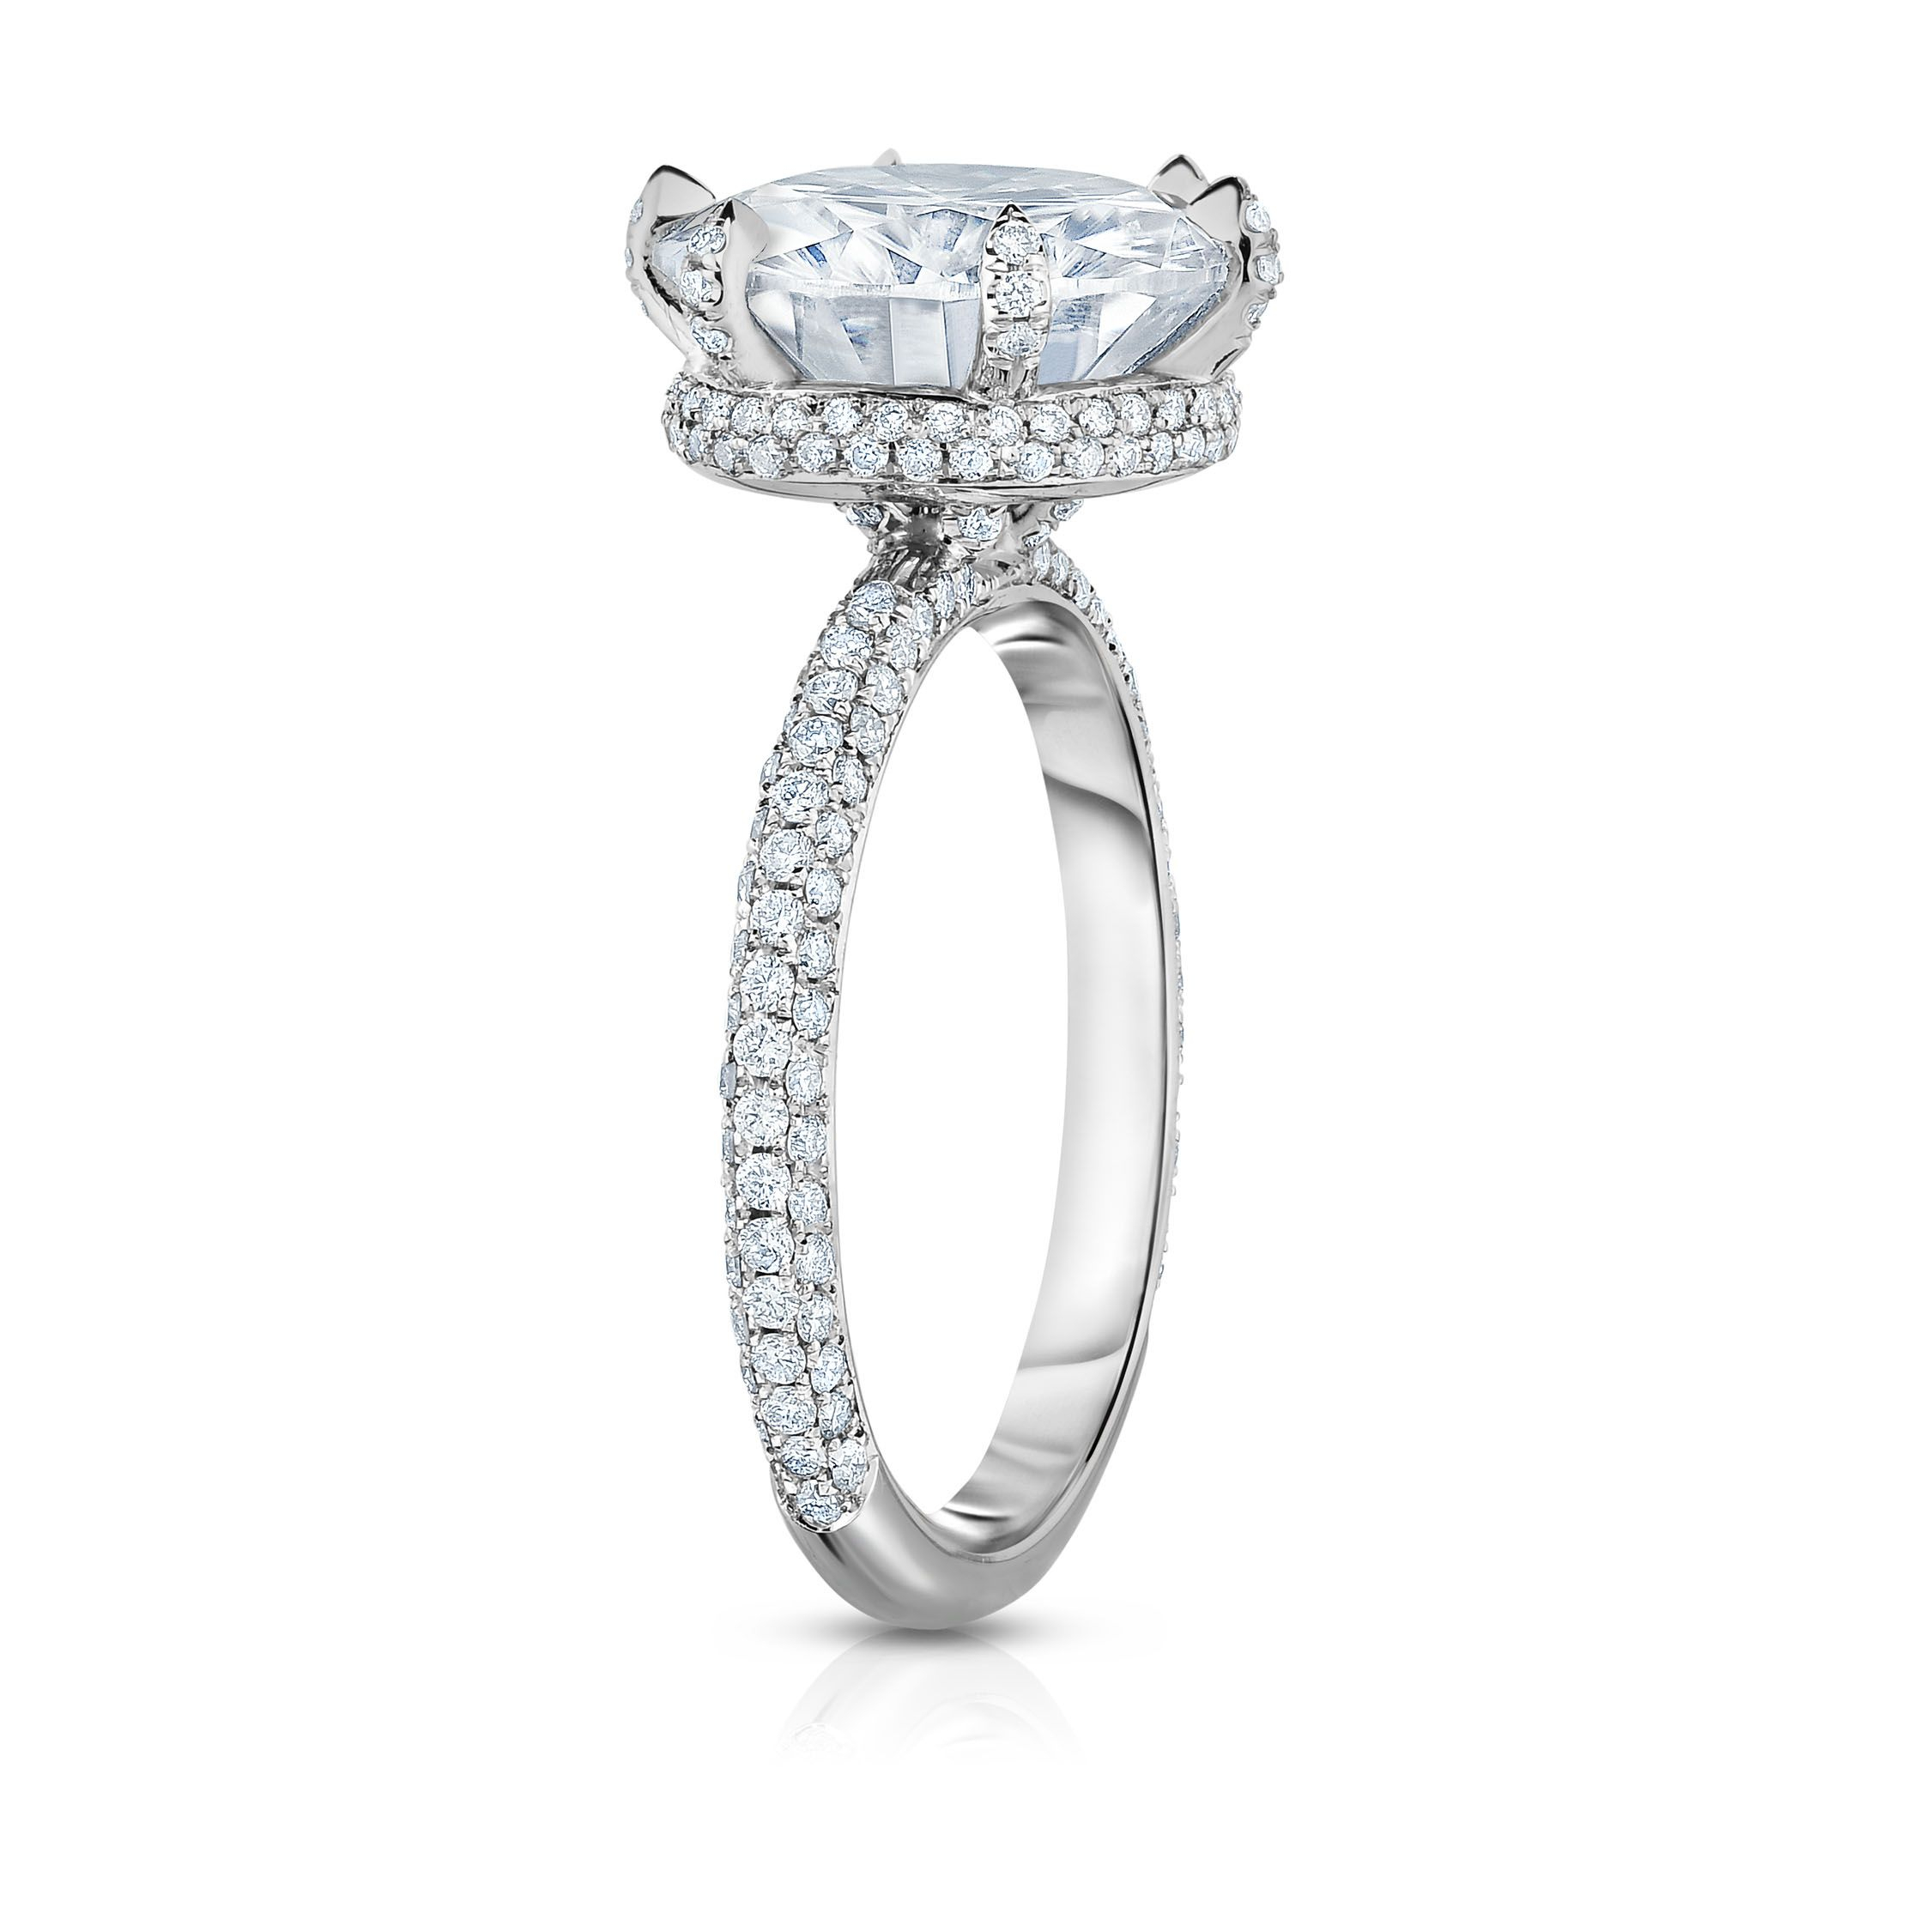 Hidden Halo Collection: Round Moissanite Atop A Three Row Intended For Triple Row Micropavé Diamond Engagement Rings (View 15 of 25)